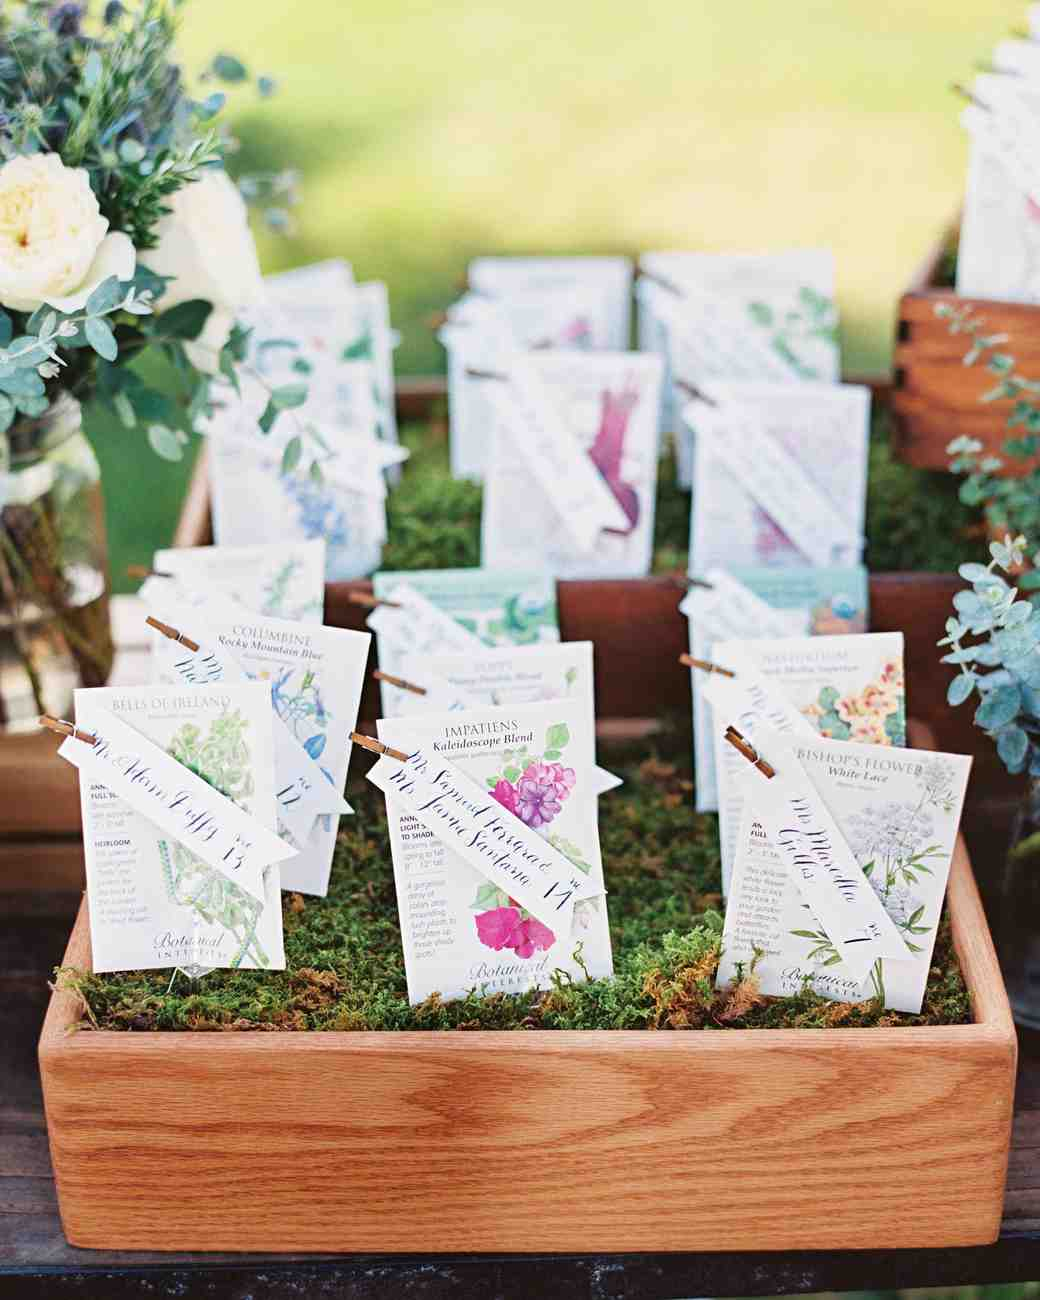 Insanely Creative Seating Cards and Displays | Martha Stewart Weddings